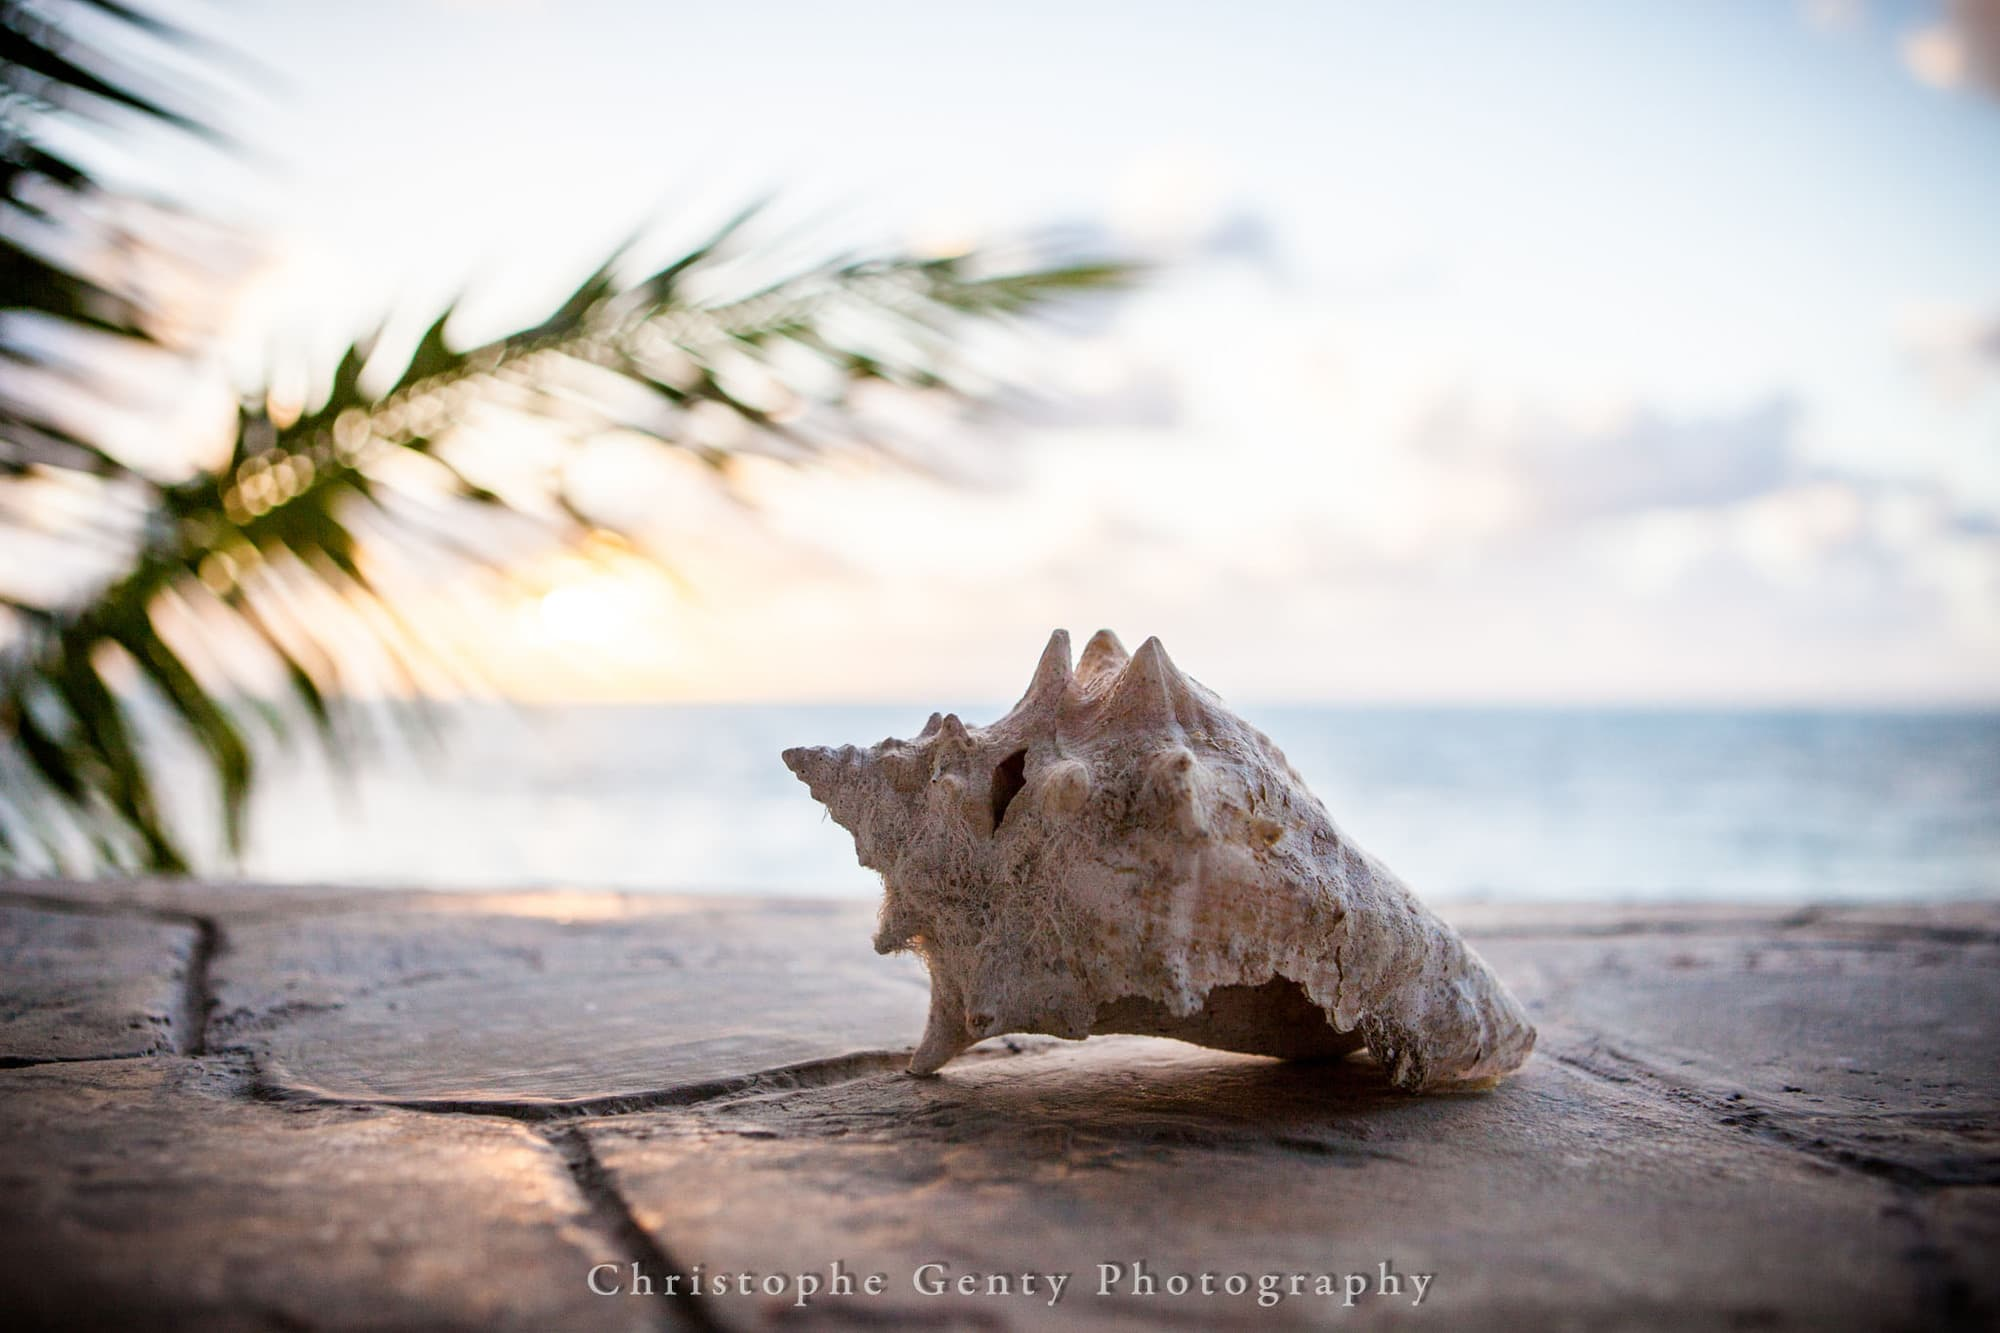 Fine Art Photography in Puerto Morelos, Mexico